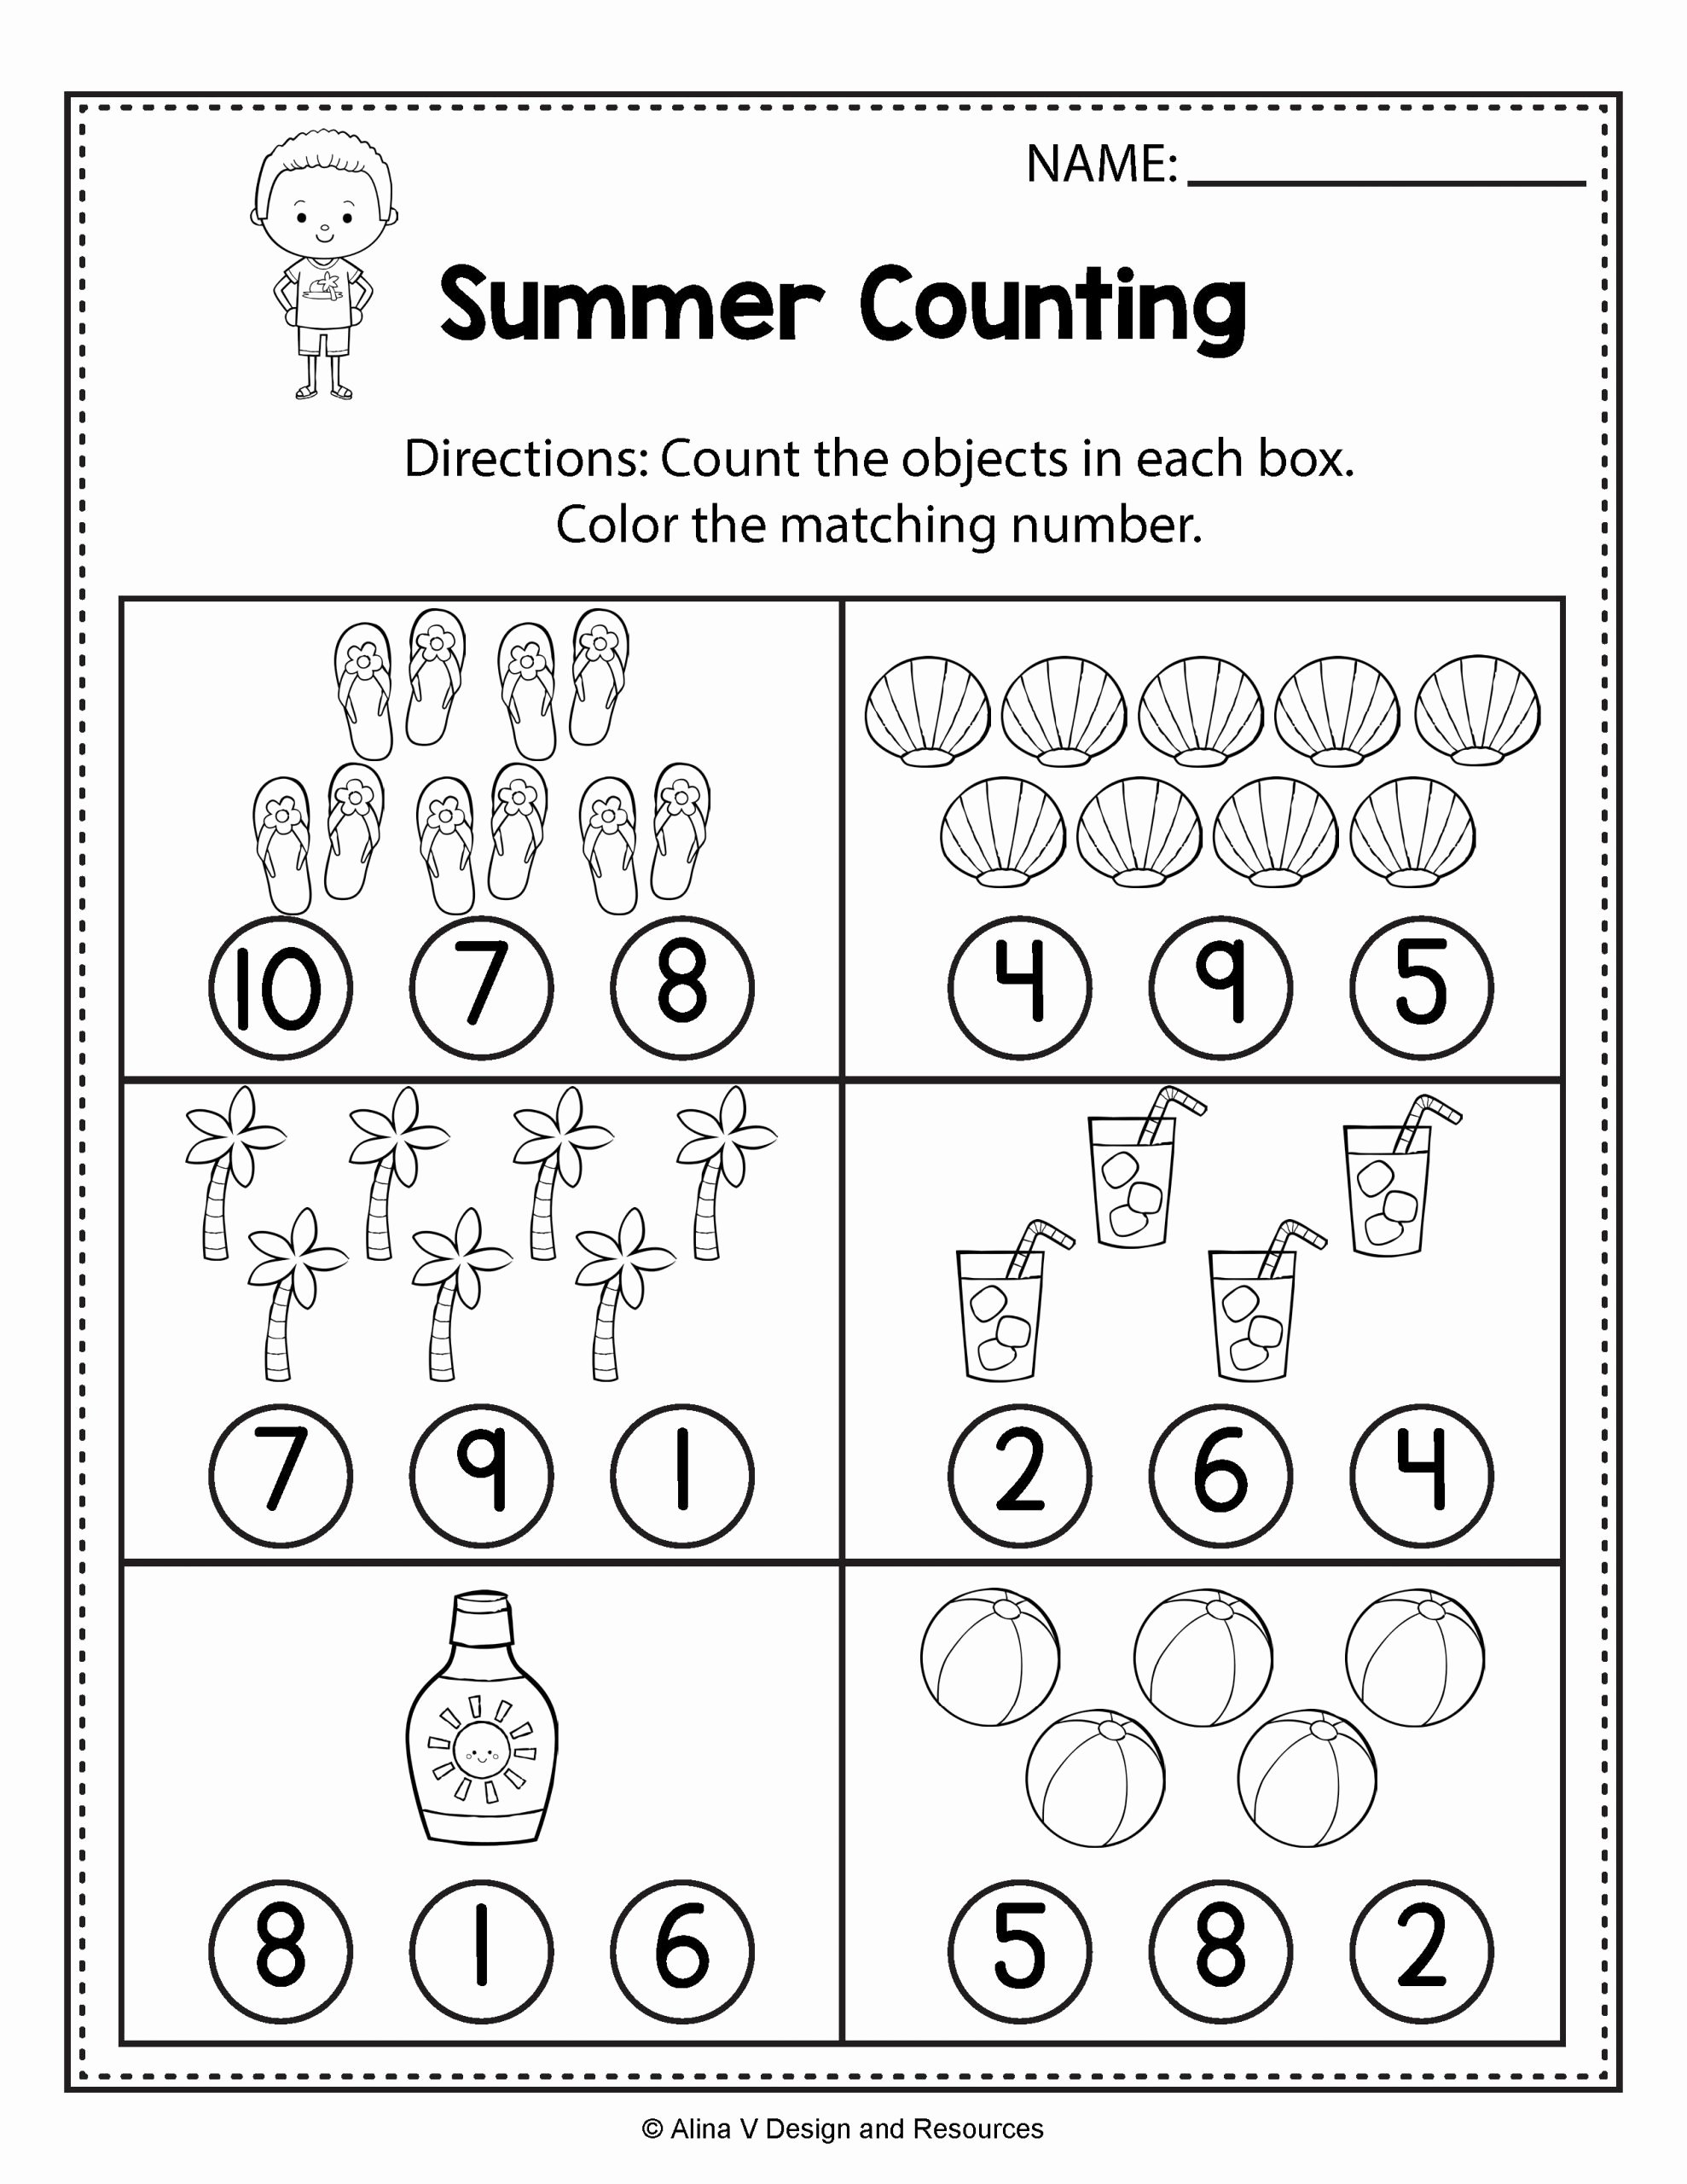 worksheet ideas counting worksheets for summer kindergarten math and activities preschool march preschoolers scaled clothes vacation free printable packet season holiday